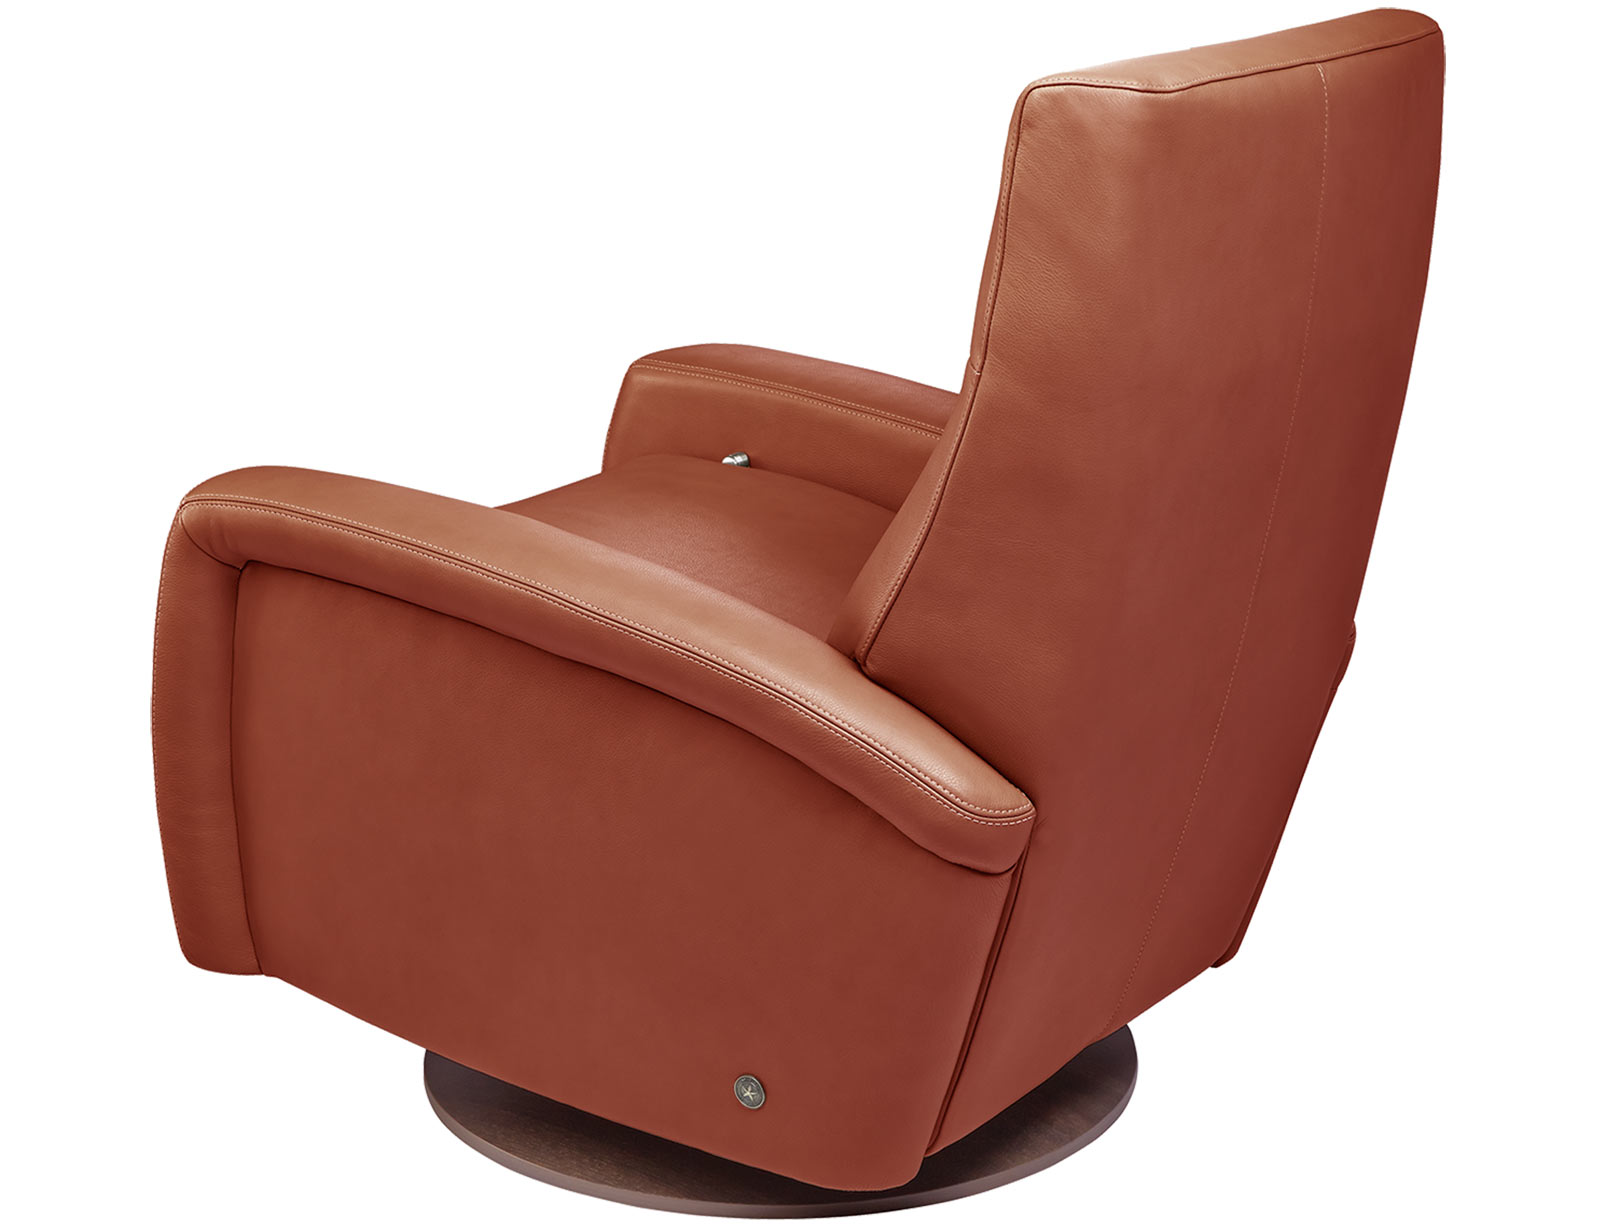 American Leather Demi Comfort Recliner available with swivel base